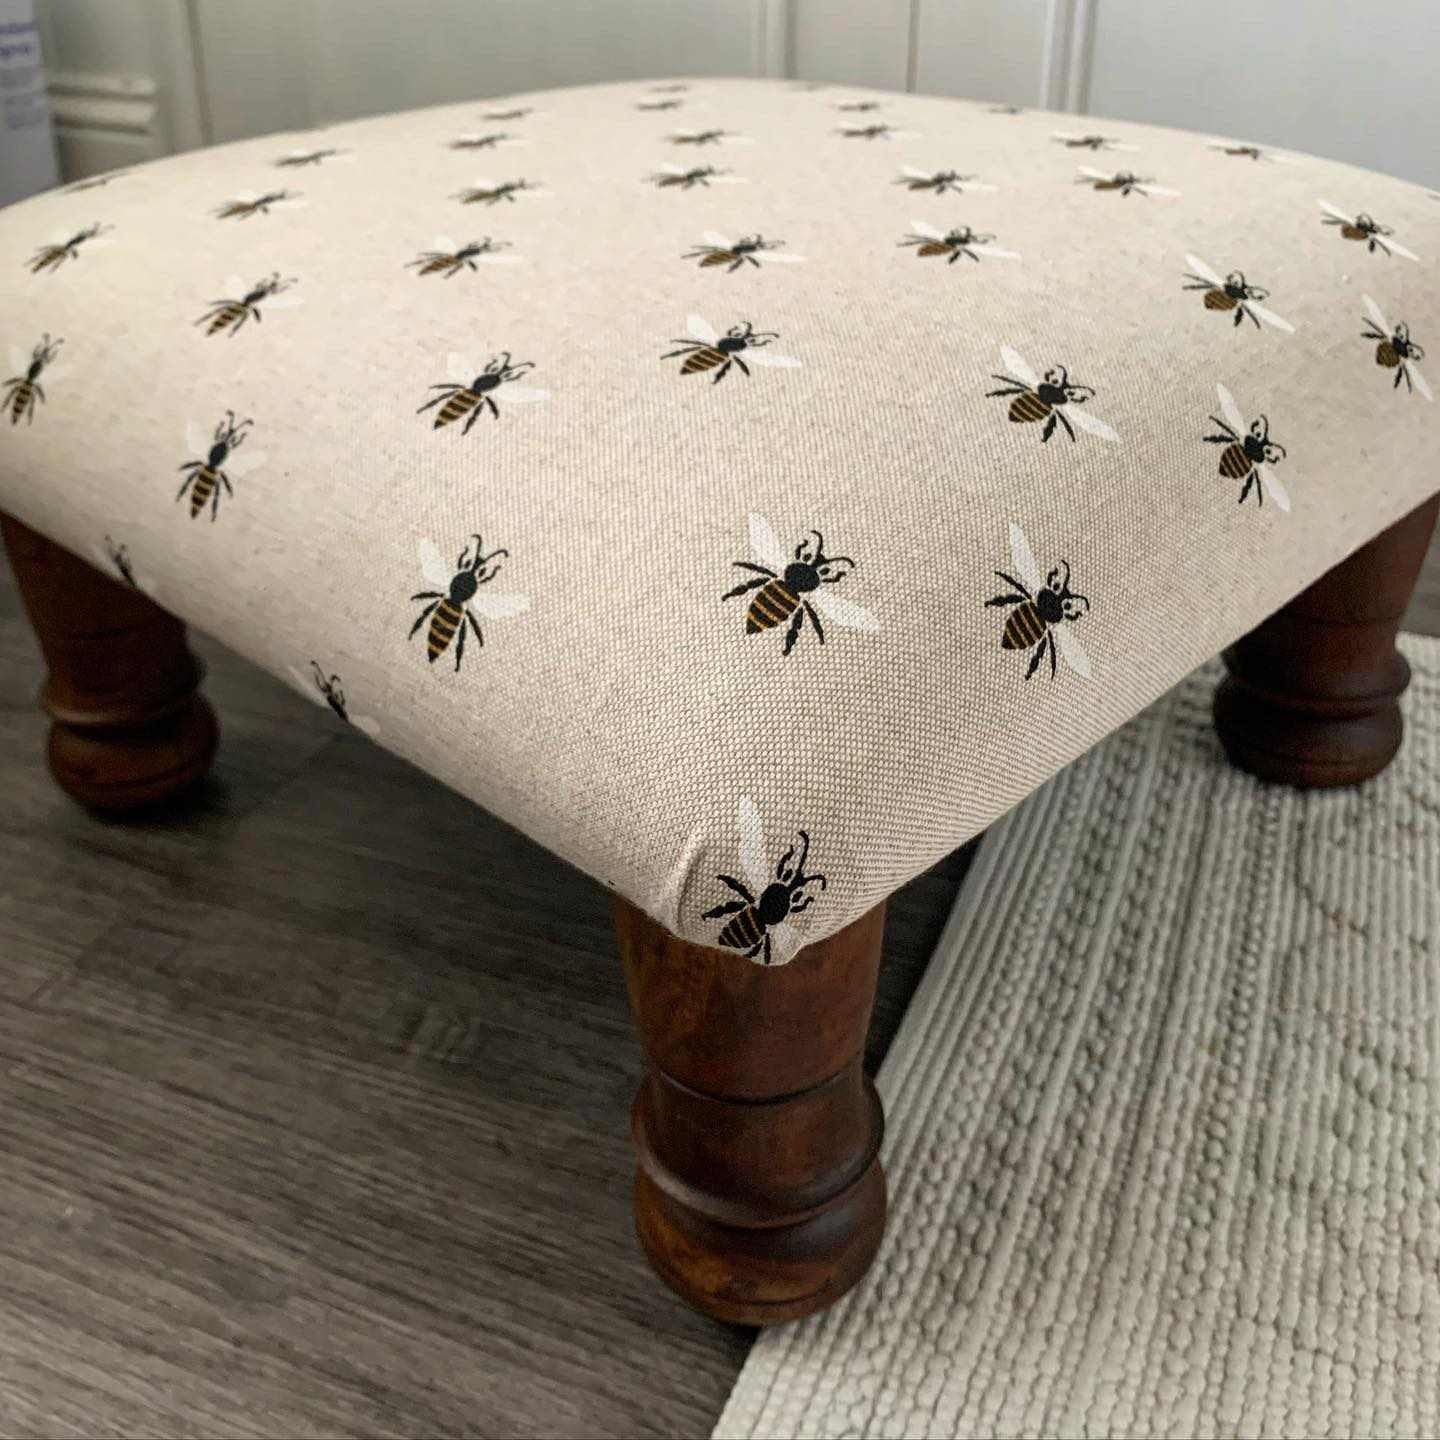 It's so satisfying to take a well loved stool that has seen better days and transform it into something fresh and new. This little stool has just been finished, and what a transformation! Swipe for before pic. ....#handcrafted #footstool #recover #reupholstery #bees #newlife #goodasnew #repurpose #homedecor #gingerandtweed #virtualcraftandflea